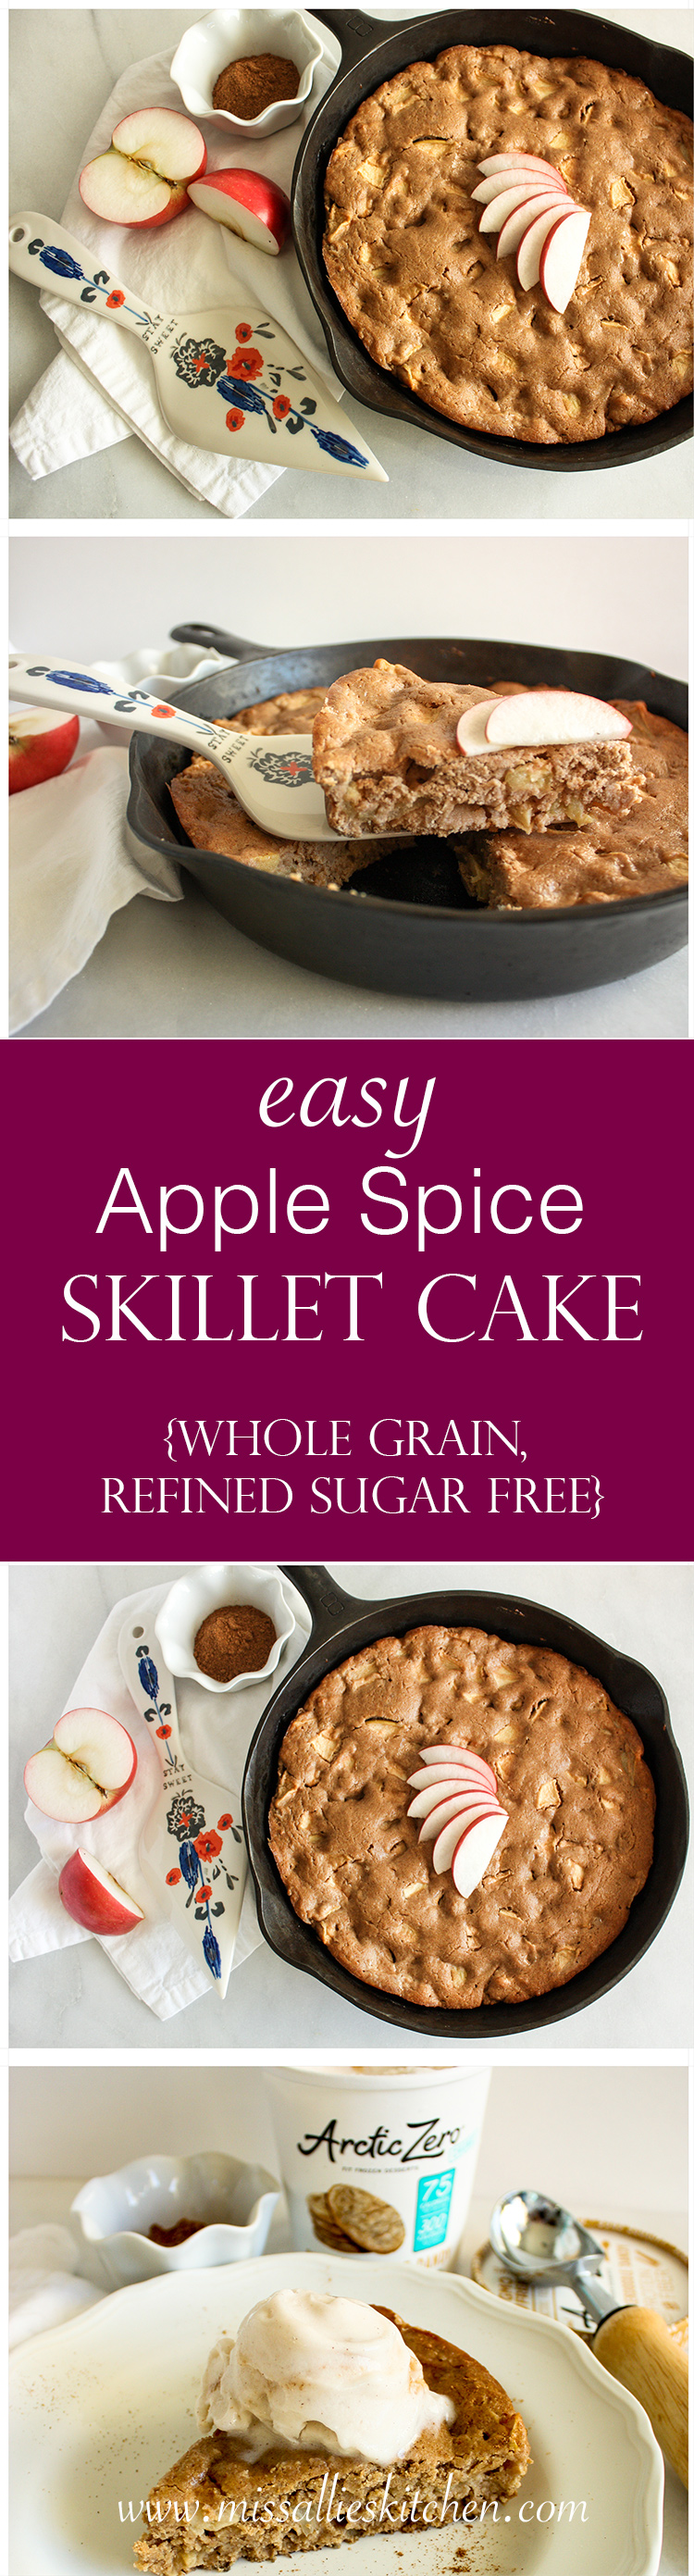 Apple Spice Skillet Cake - an easy, whole grain & comforting dessert made conveniently in your favorite skillet